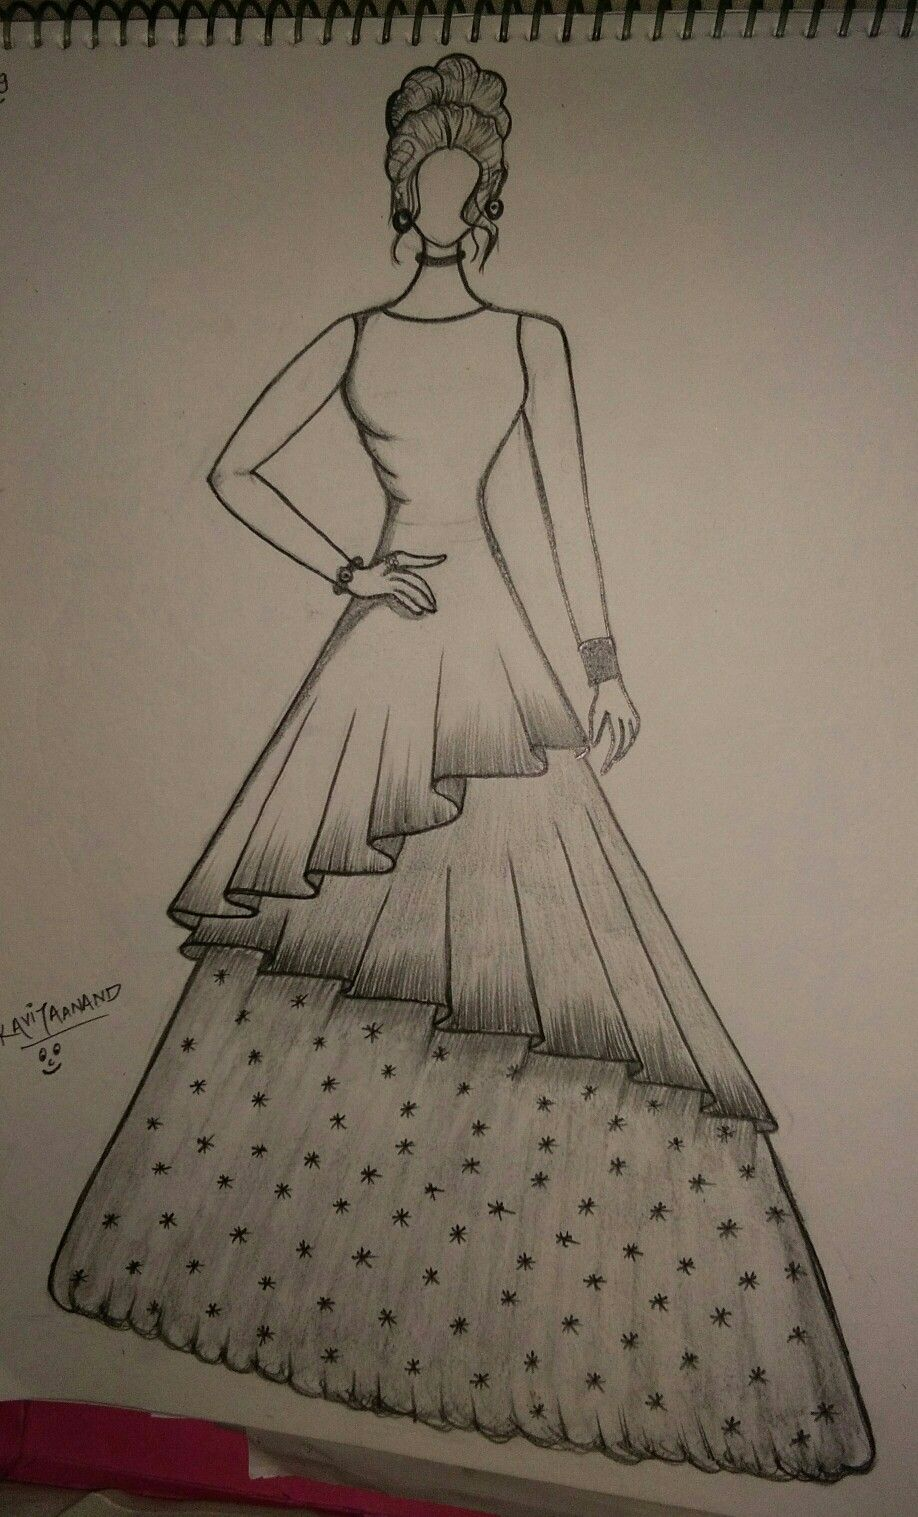 Pin By Kavita Anand On Made By The Kkavita Anand Fashion Design Drawings Fashion Illustration Sketches Dresses Fashion Design Sketches